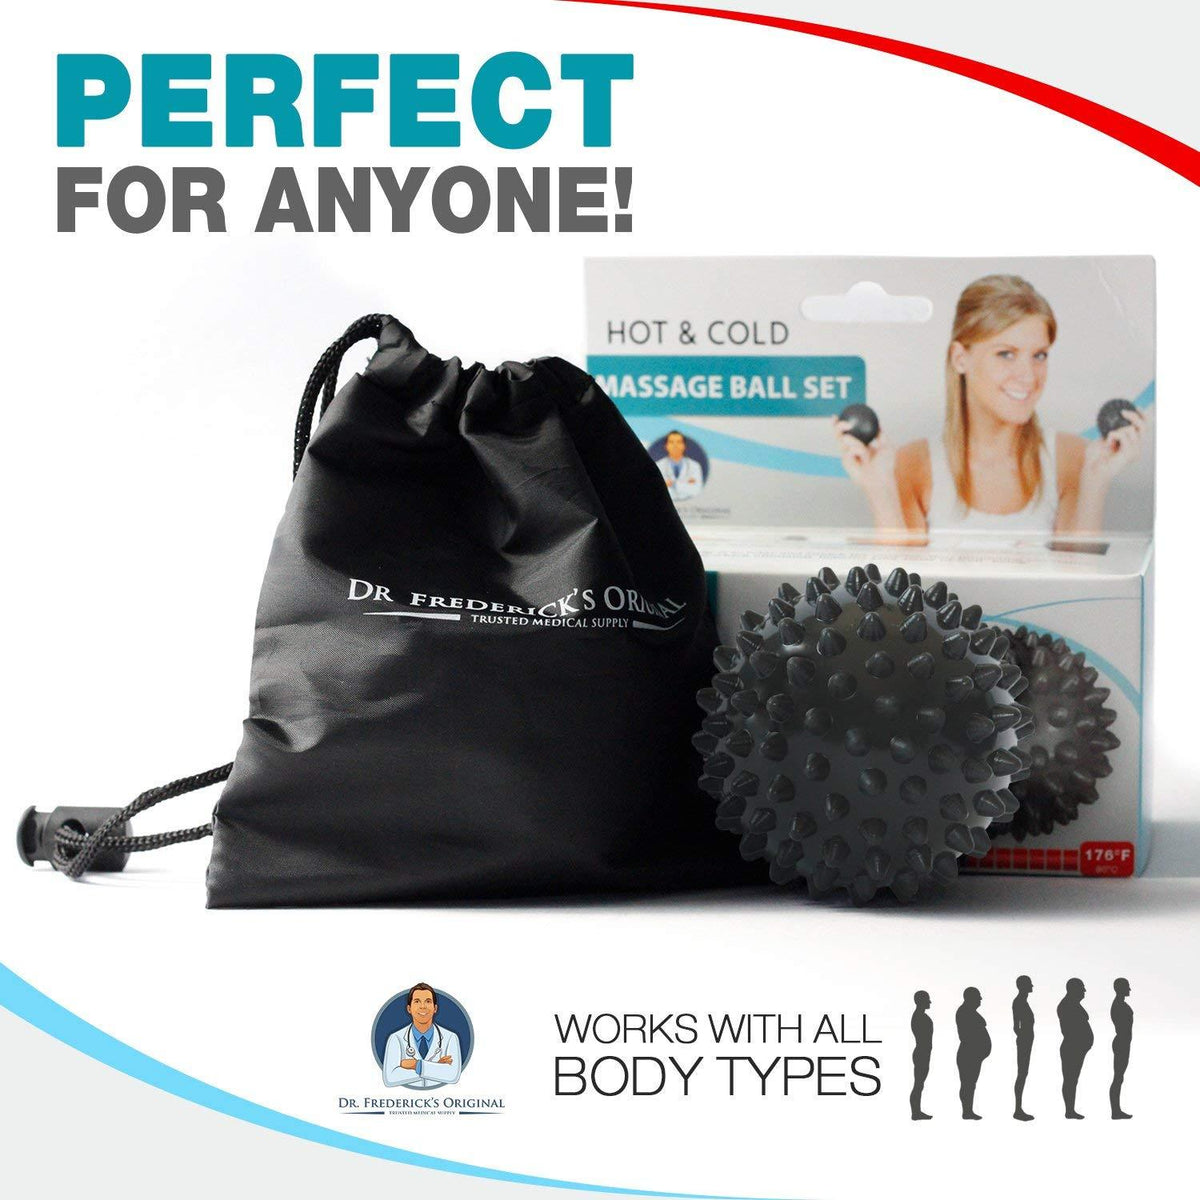 Dr. Frederick's Original Hot & Cold Massage Ball Set - Temperature Sensitive Massage Balls - for Deep Massage, Plantar Fasciitis, and Trigger Points Back Pain Dr. Frederick's Original